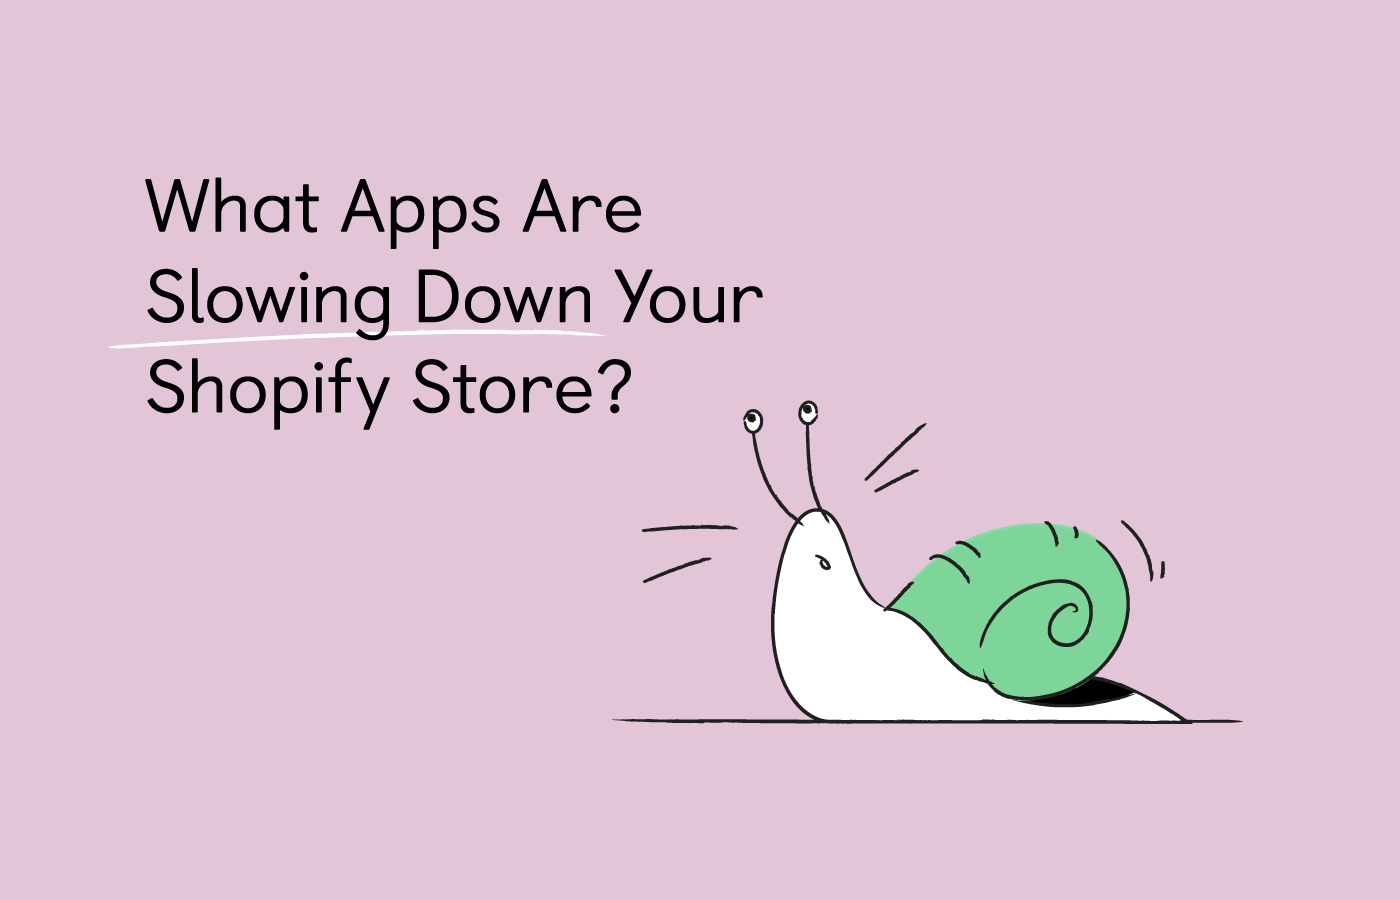 What Apps Are Slowing Down Your Shopify Store?